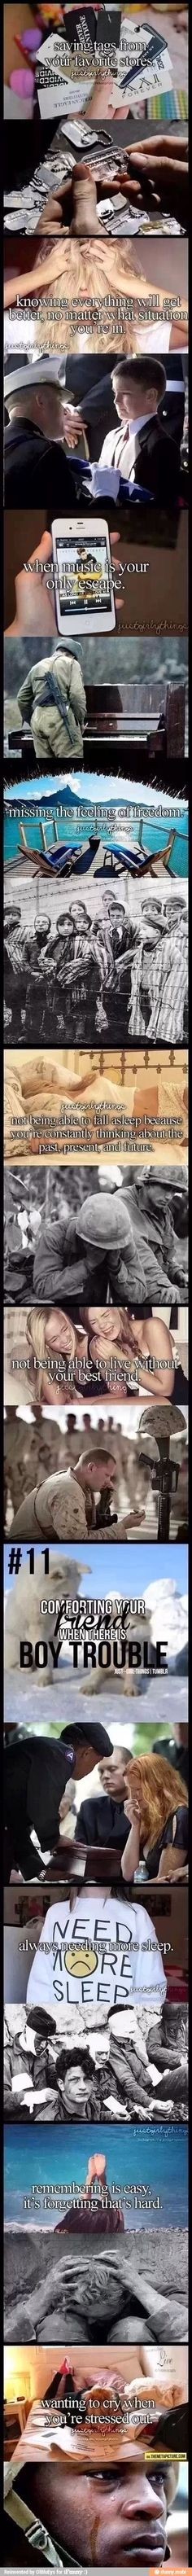 So moving. Wow. It's amazing how in one collage you realise how much you take for granted.